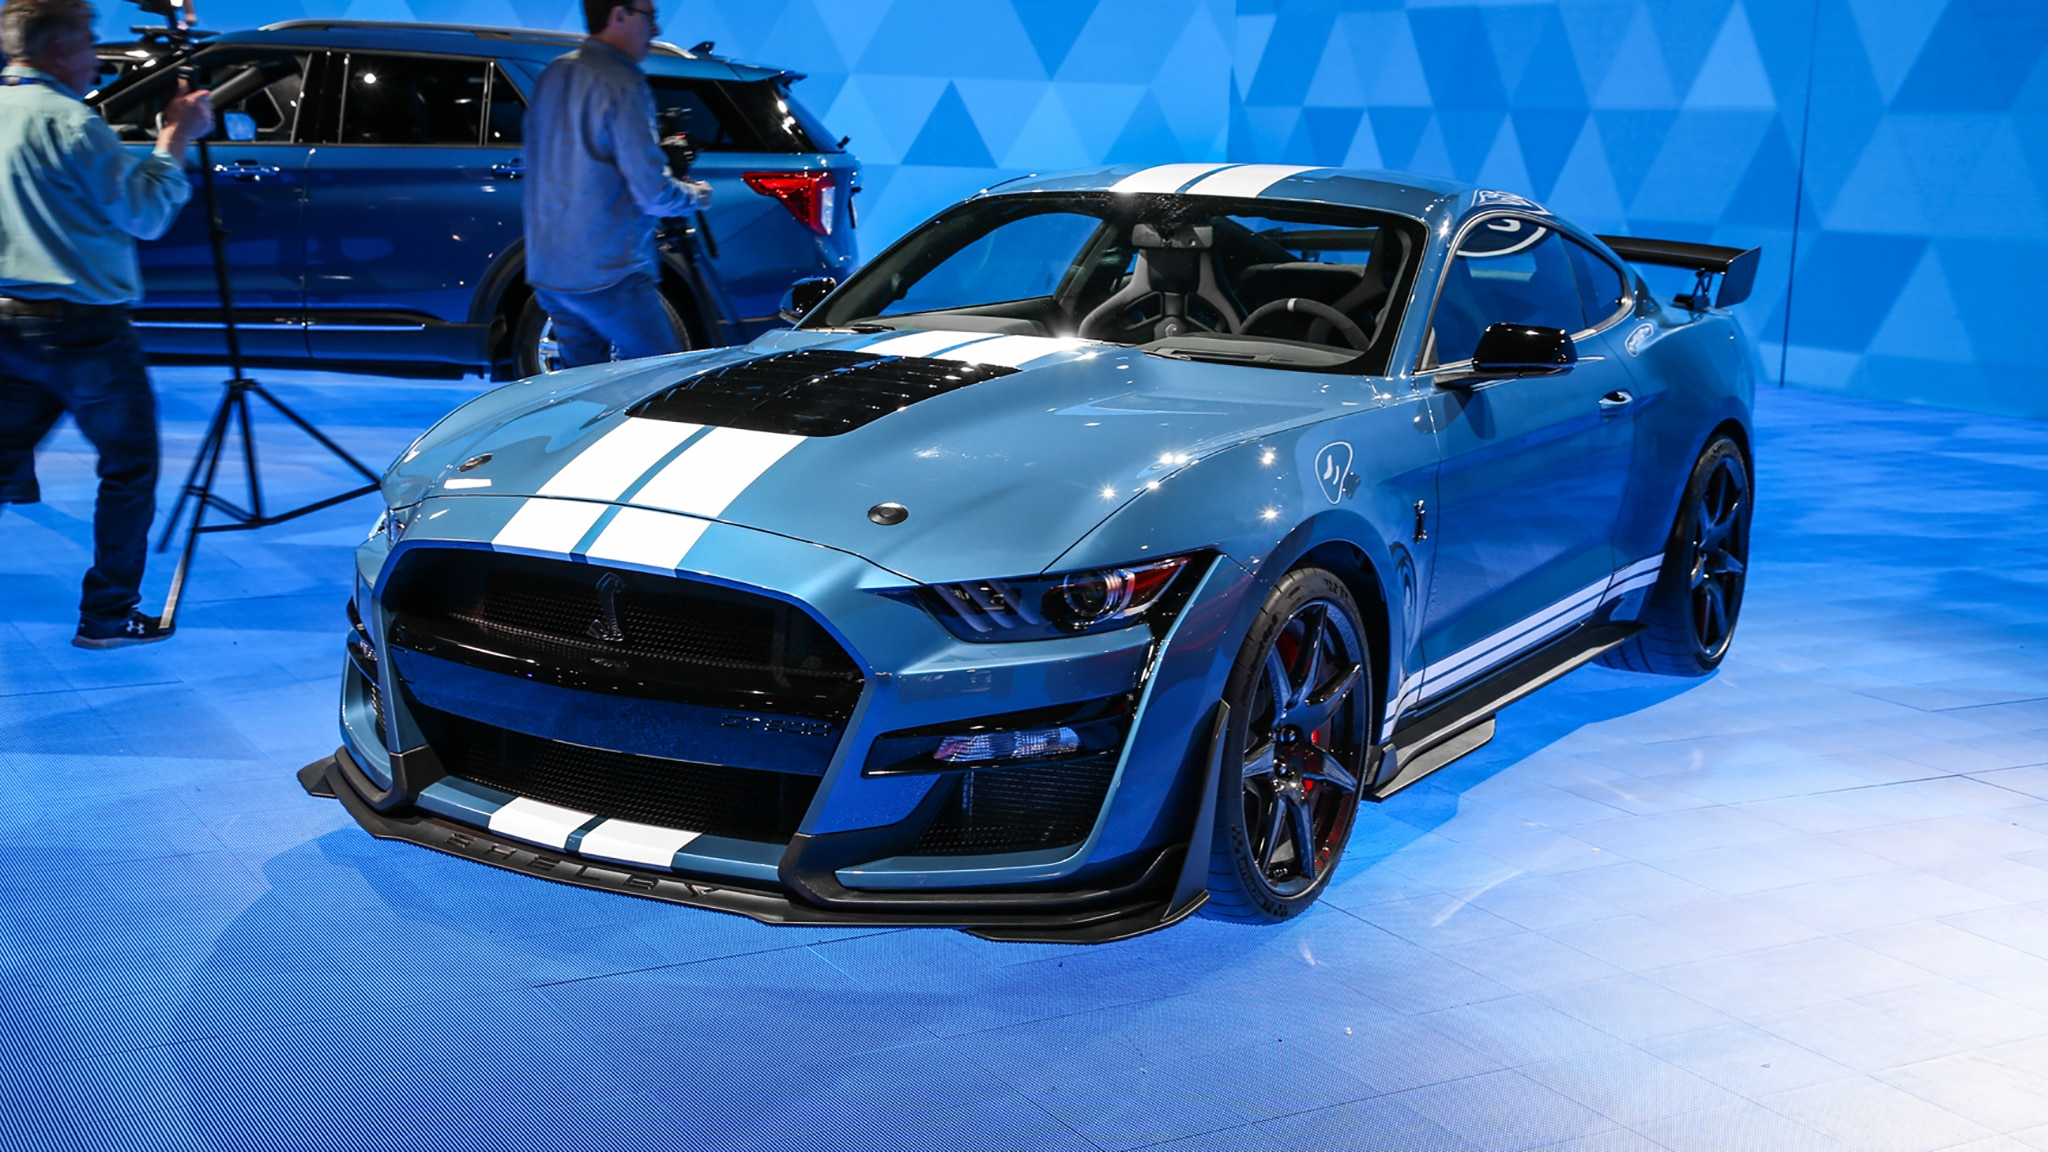 2020 Ford Mustang Review.Complete Car Info For 81 Best 2020 Ford Mustang Shelby Gt500